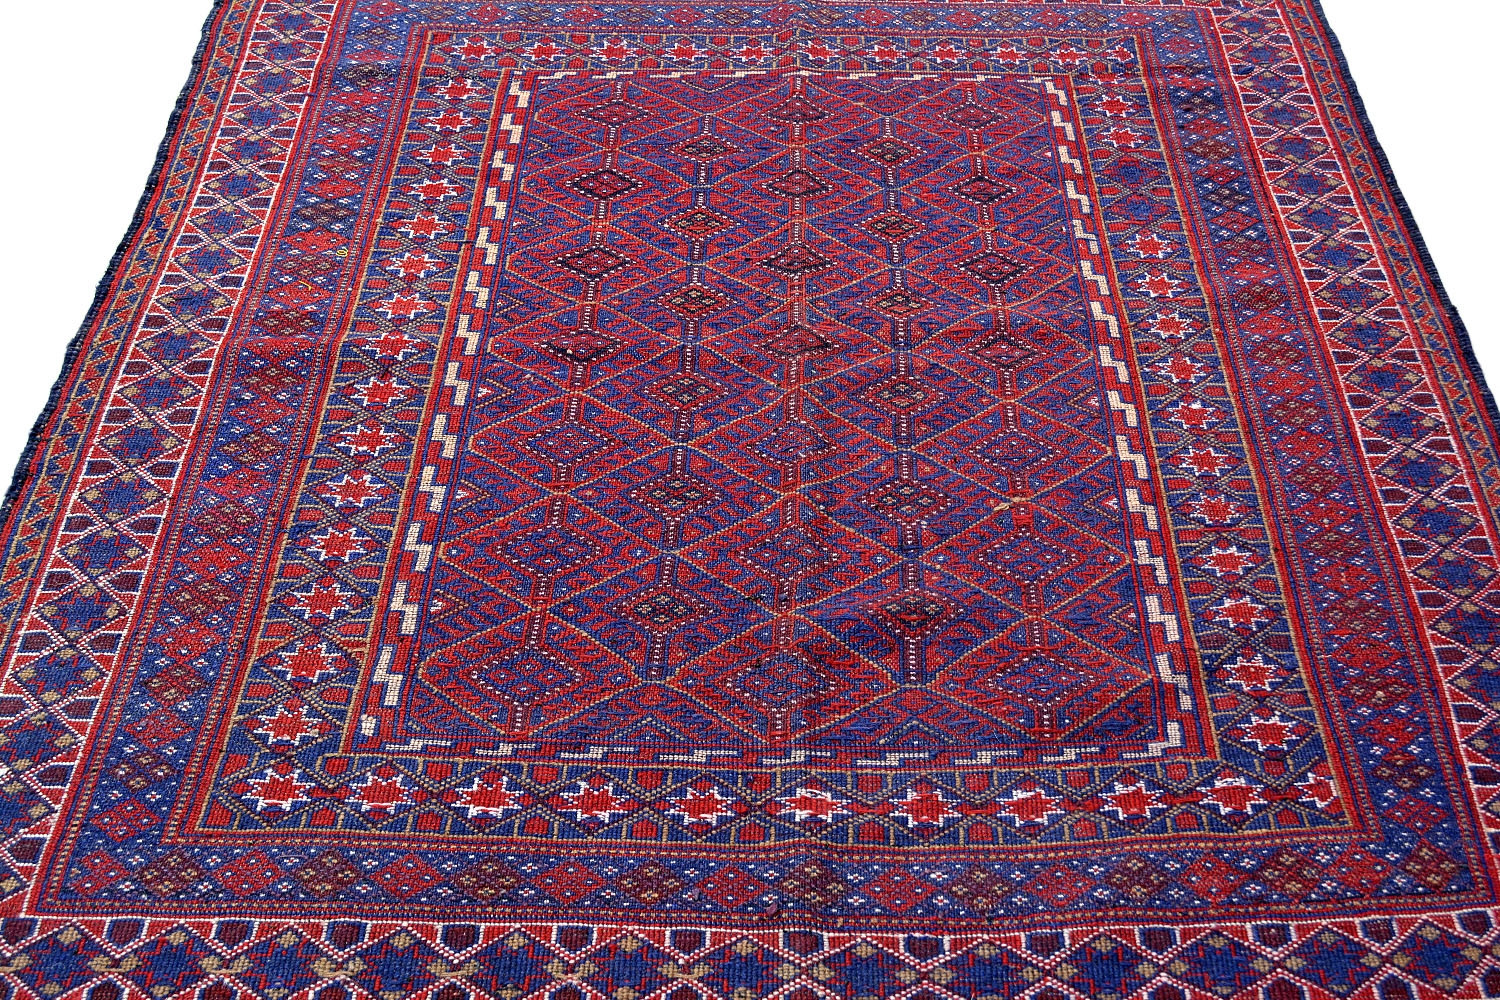 Kilim Basheer Bukhara Handmade Kilim Rugs And Carpet For Sale